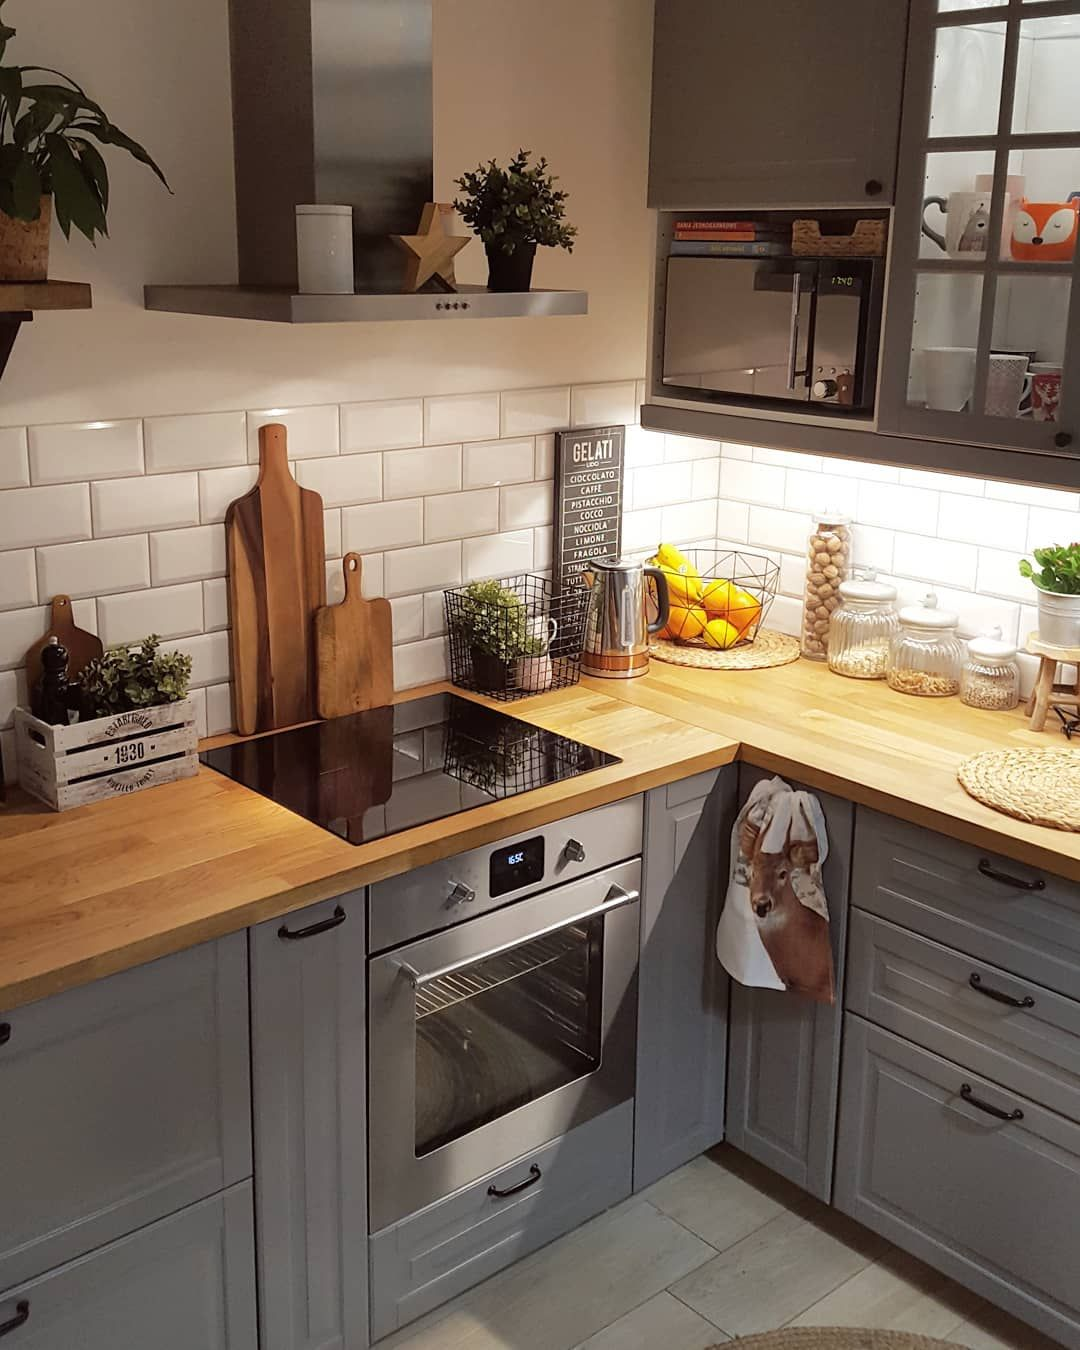 30 Most Beautiful Kitchen Decorating Ideas 2019 Page 26 Of 33